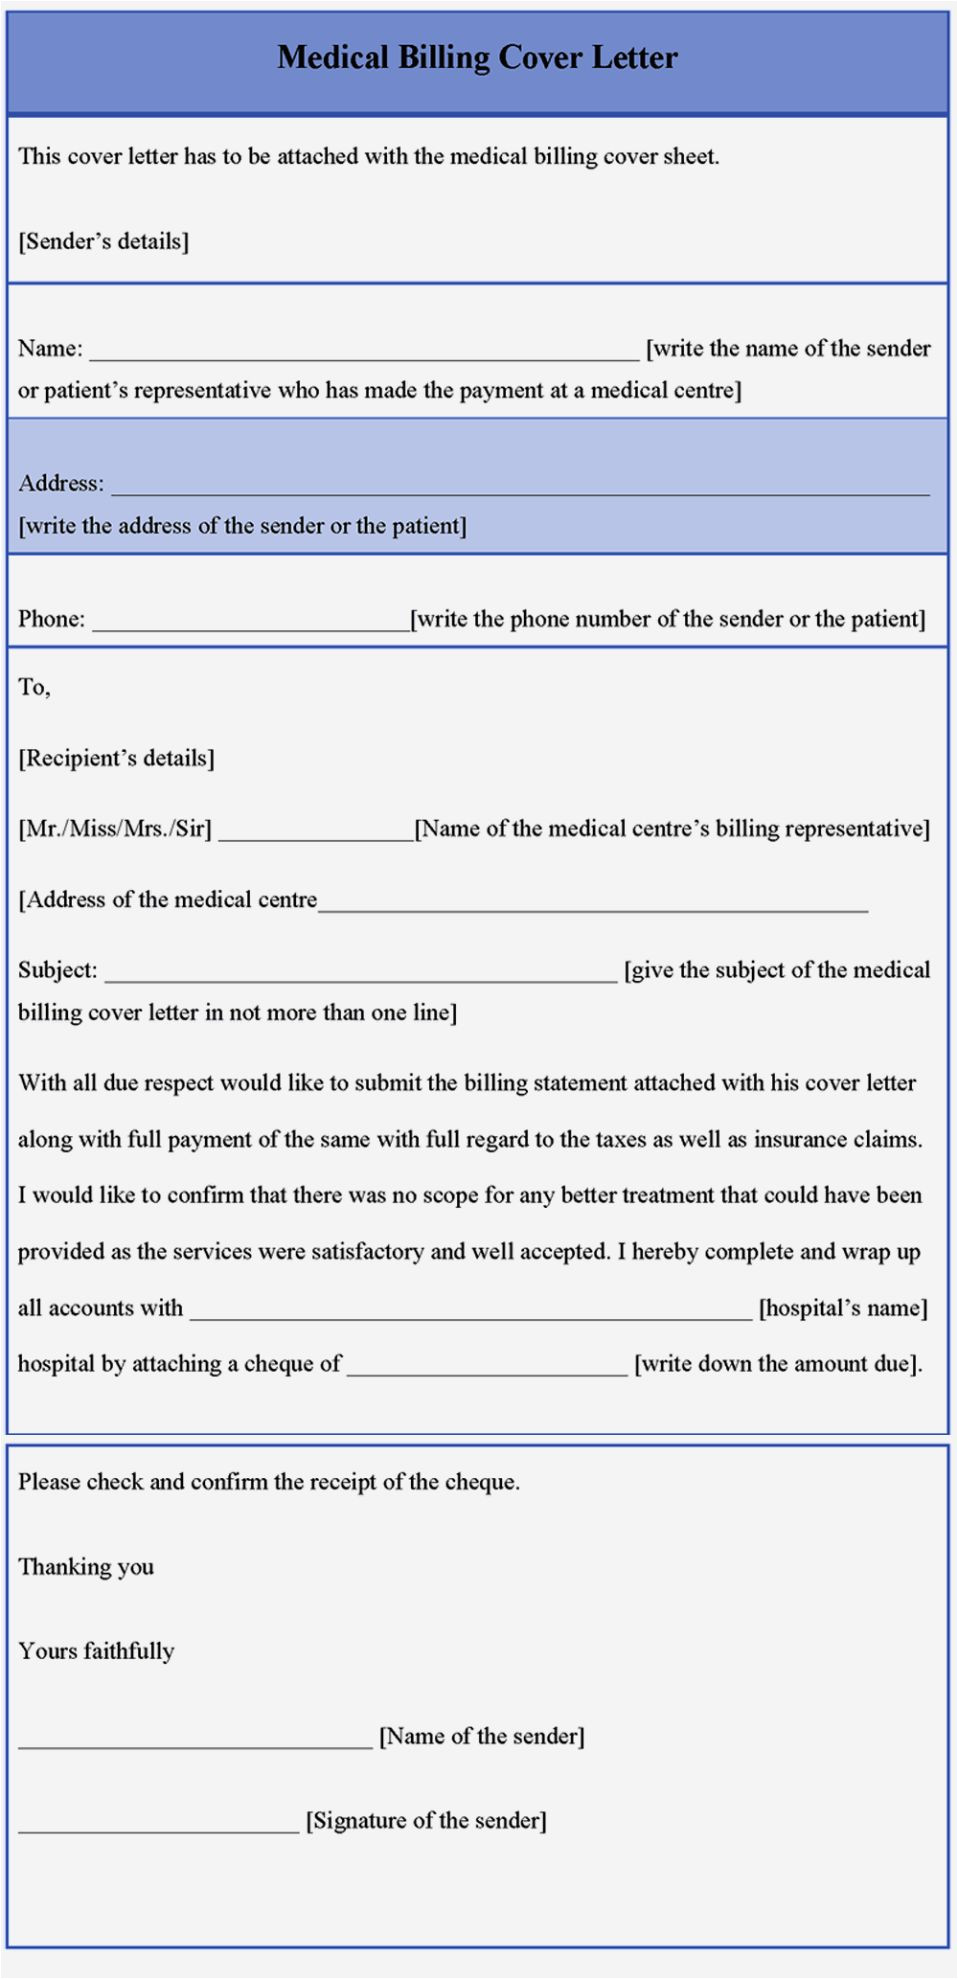 cover letter examples for medical biller